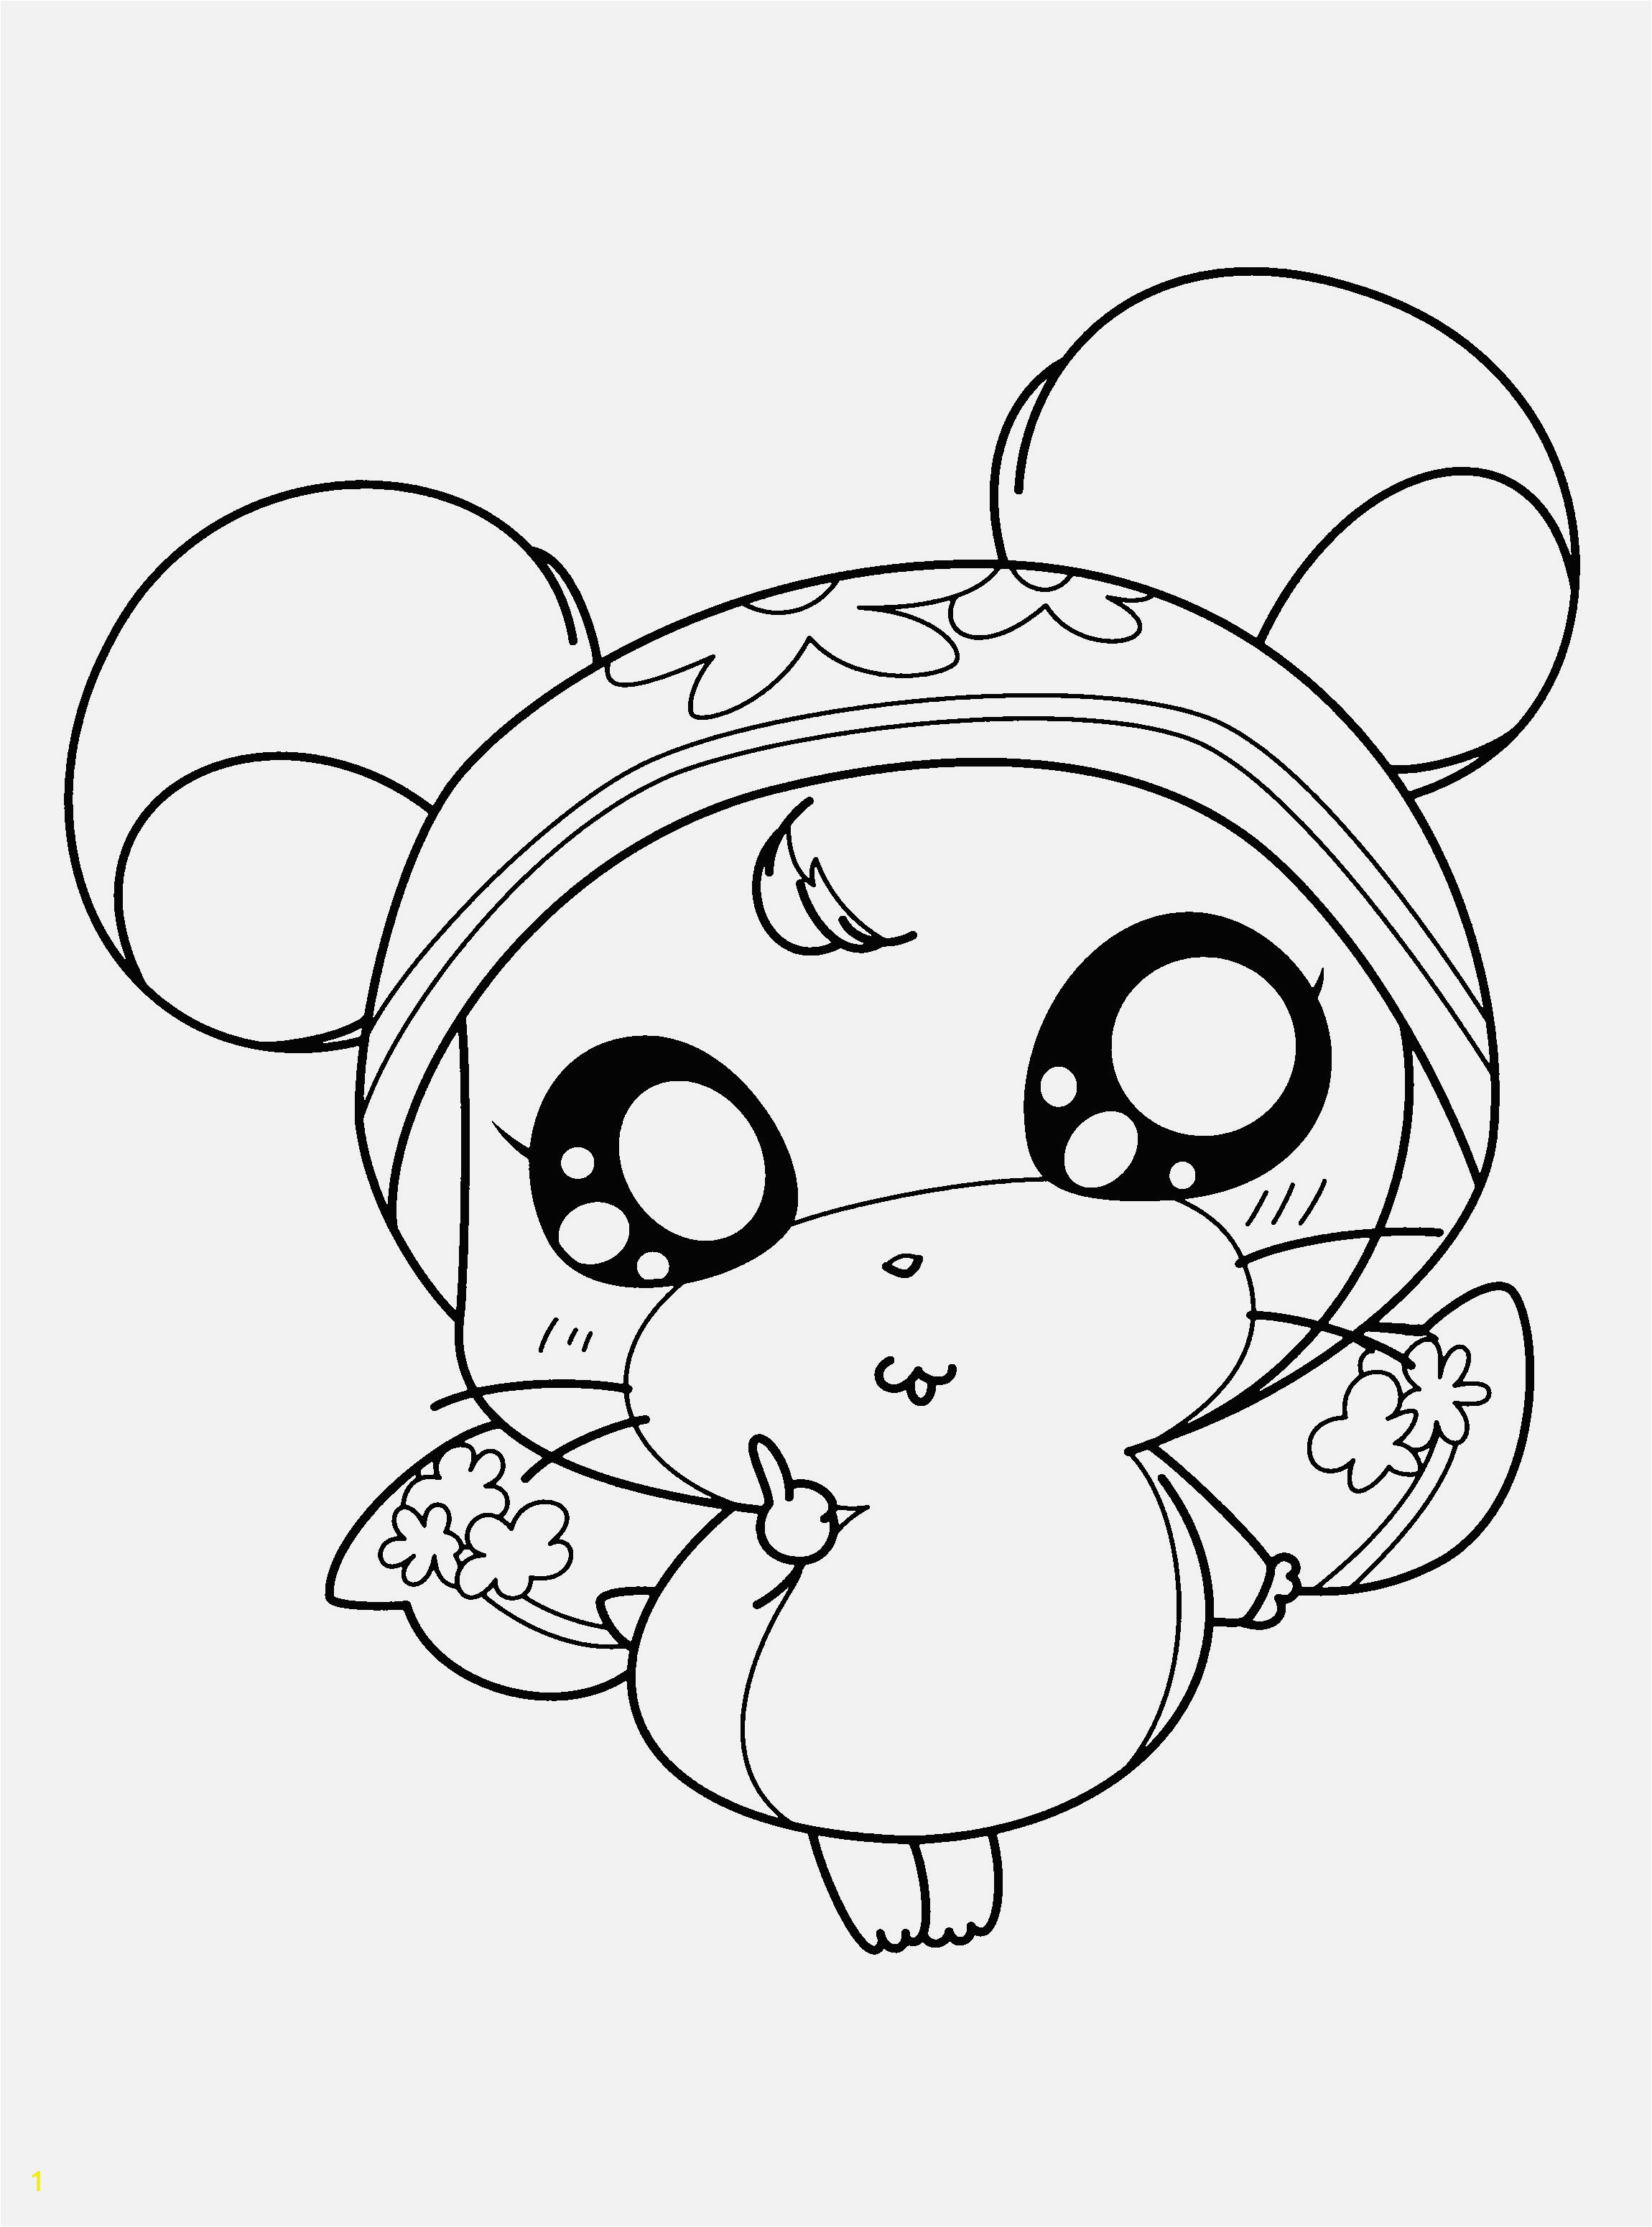 Free Paw Patrol Coloring Pages Free Download Coloring Steets Elegant Coloring Sheets Unique Free Coloring Pages